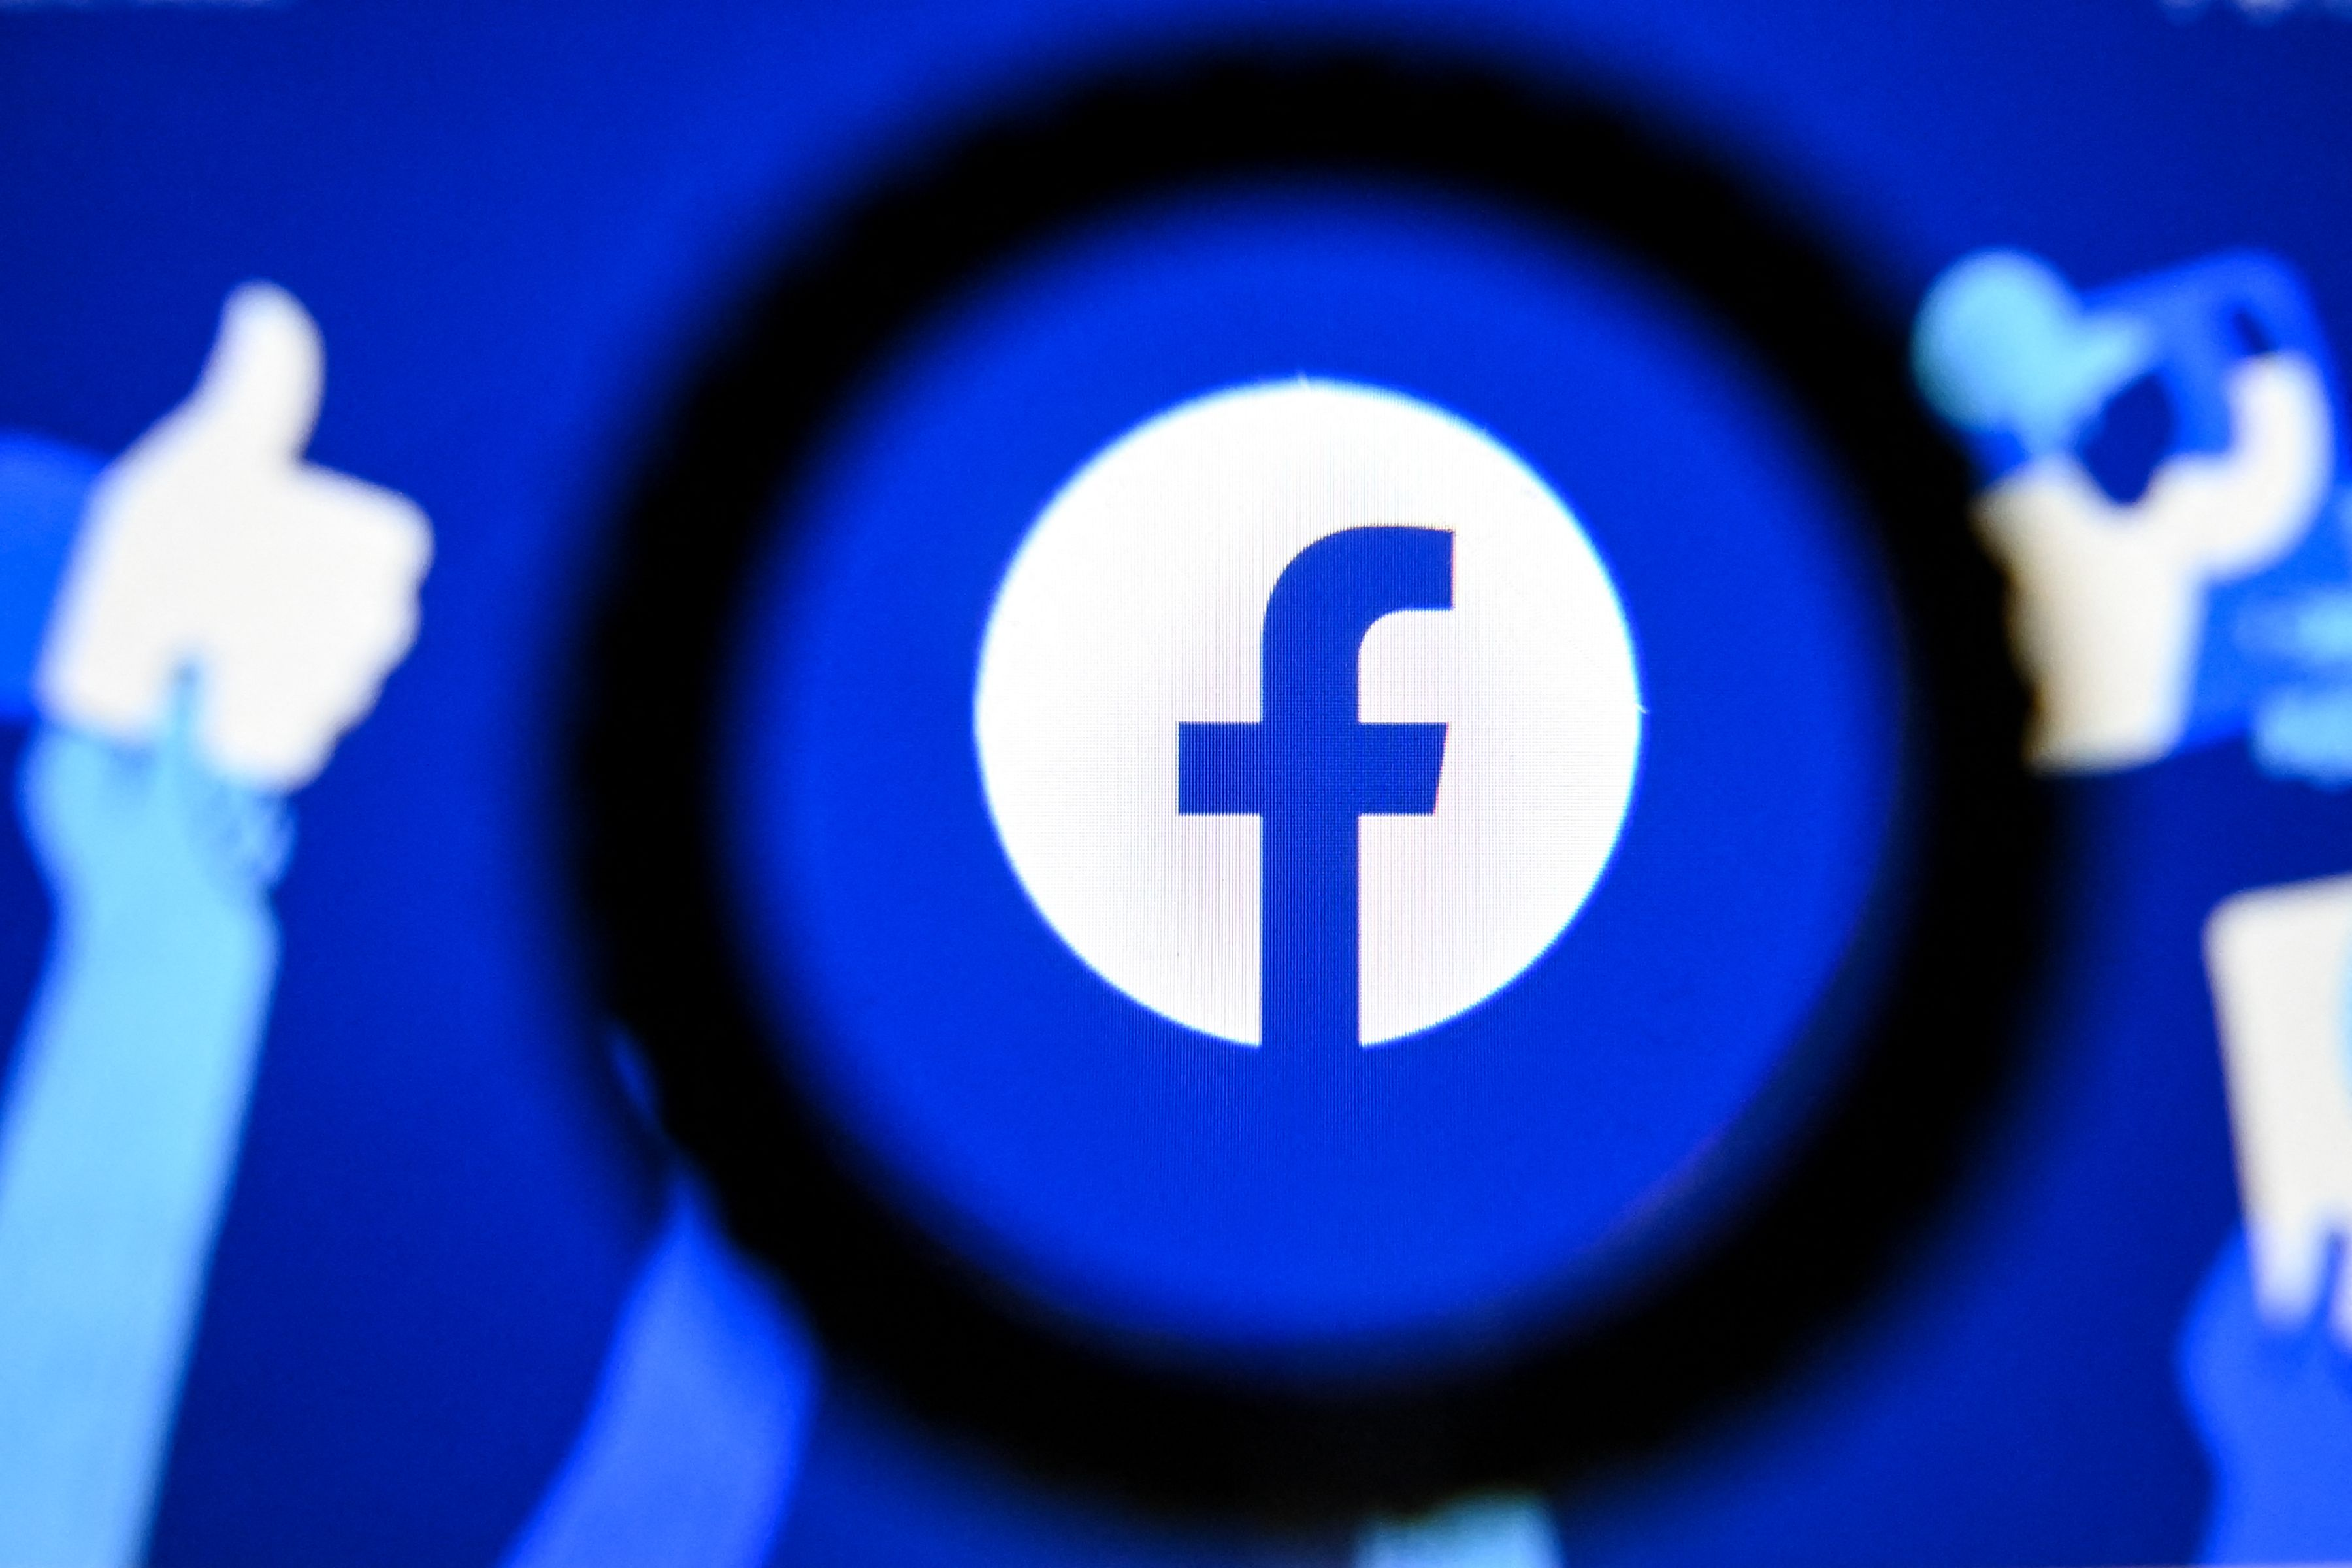 Facebook will punish rule breakers by down-ranking their posts in groups